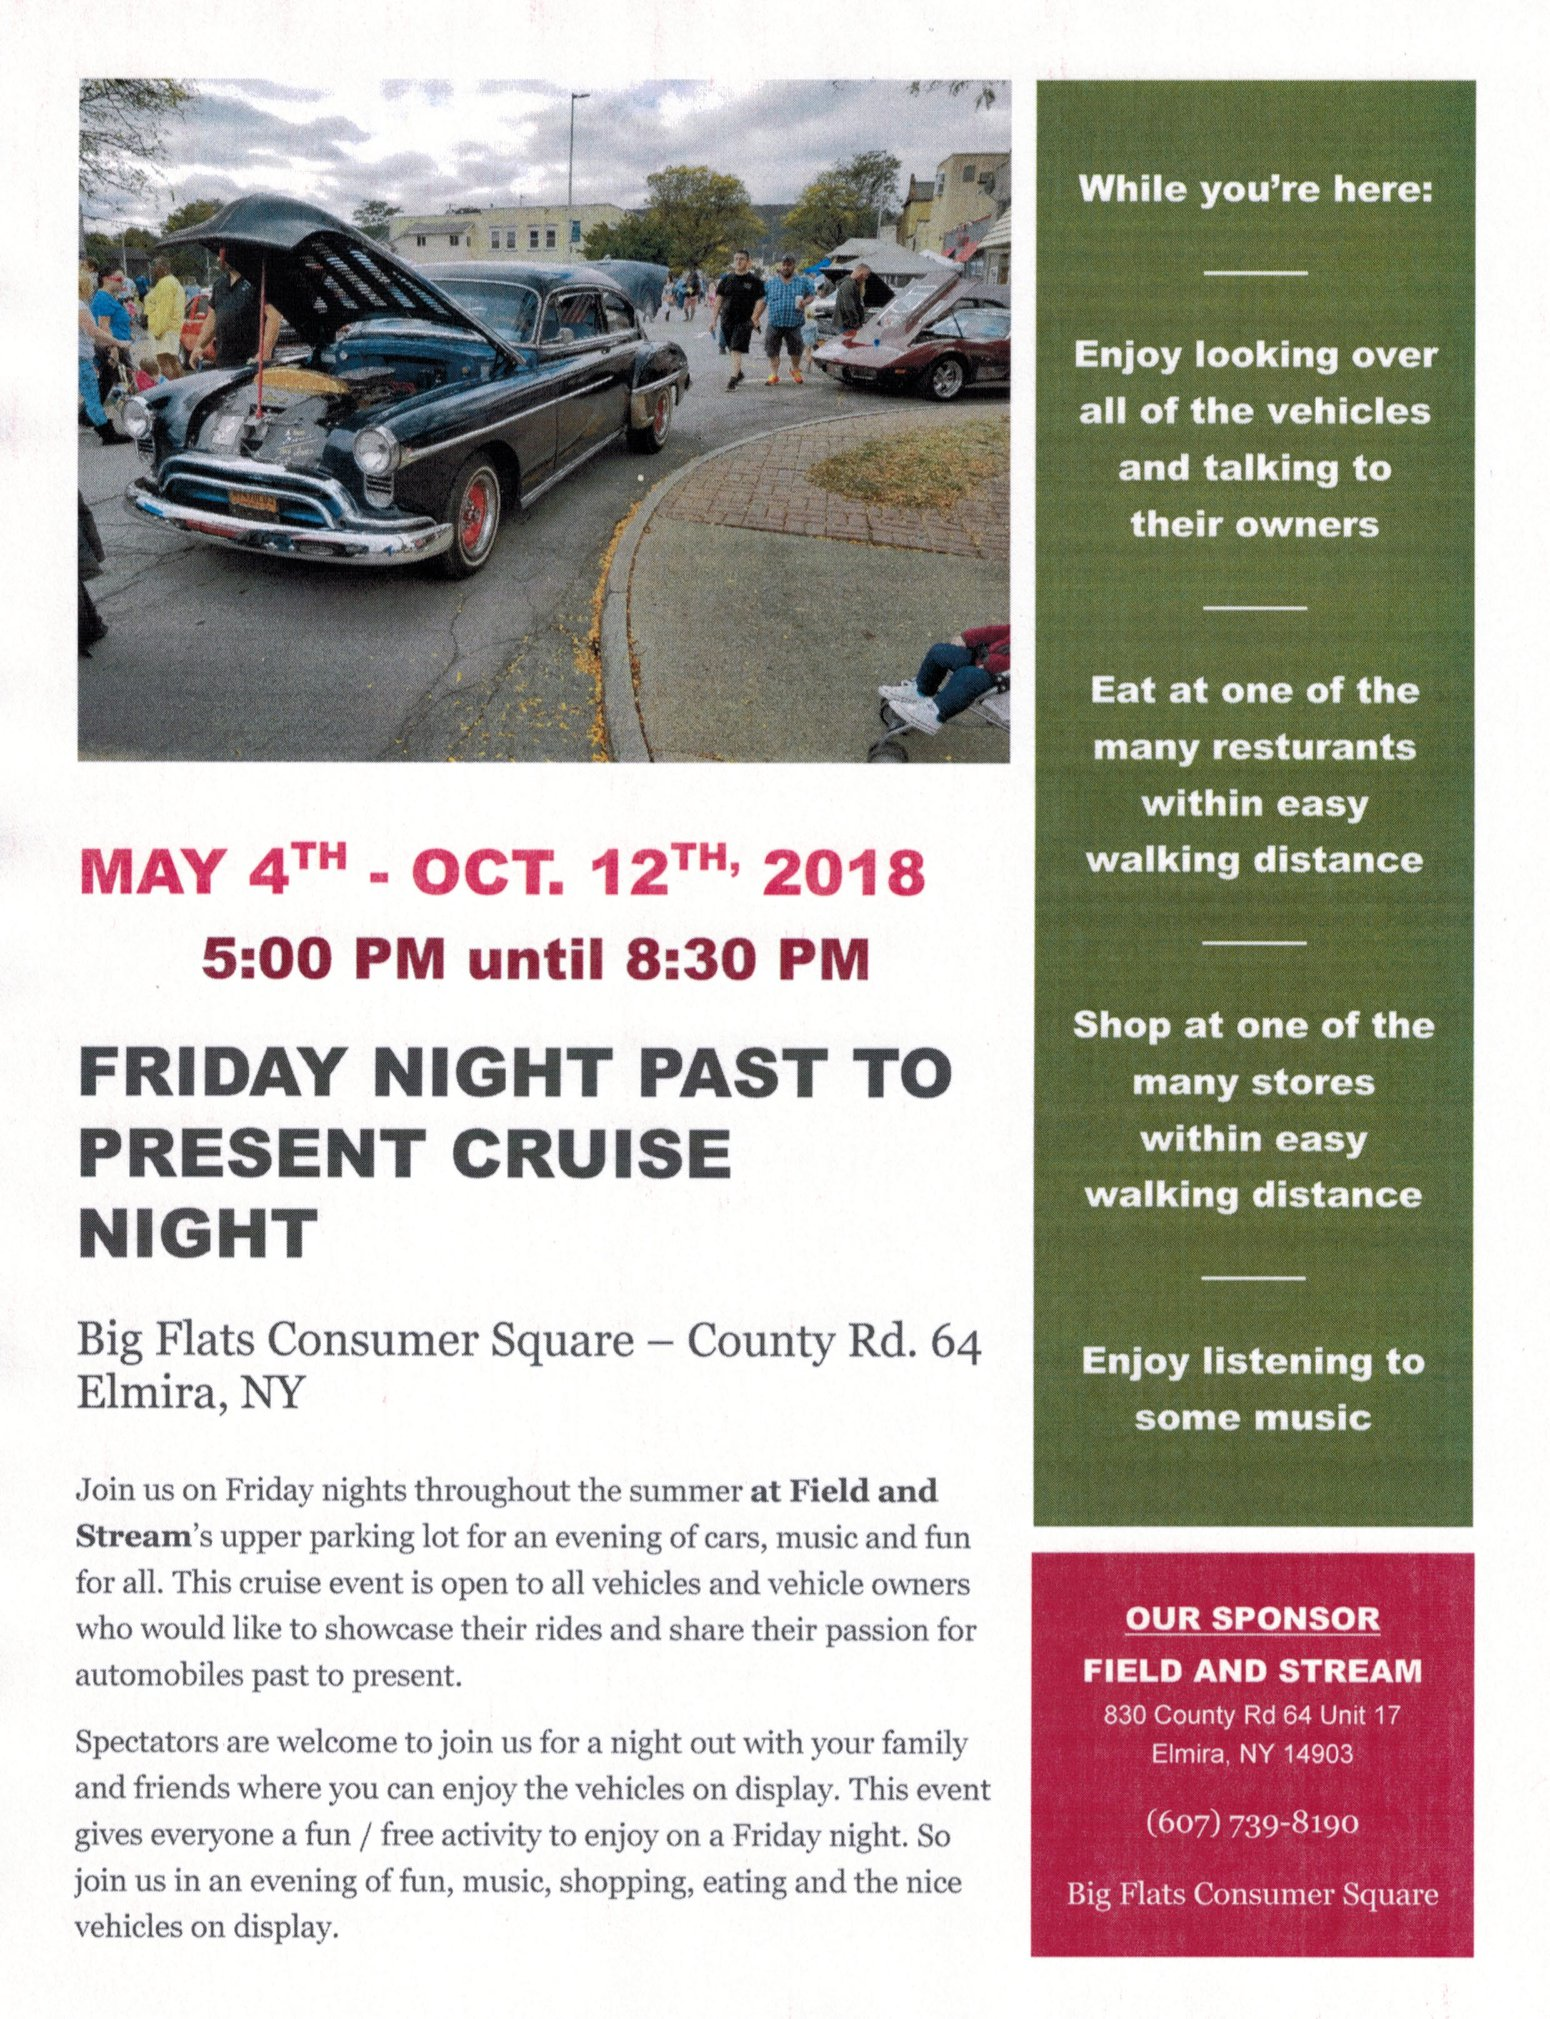 Friday Night Past to Present Cruise Night 2018 @ Field and Streams parking lot | Elmira | New York | United States